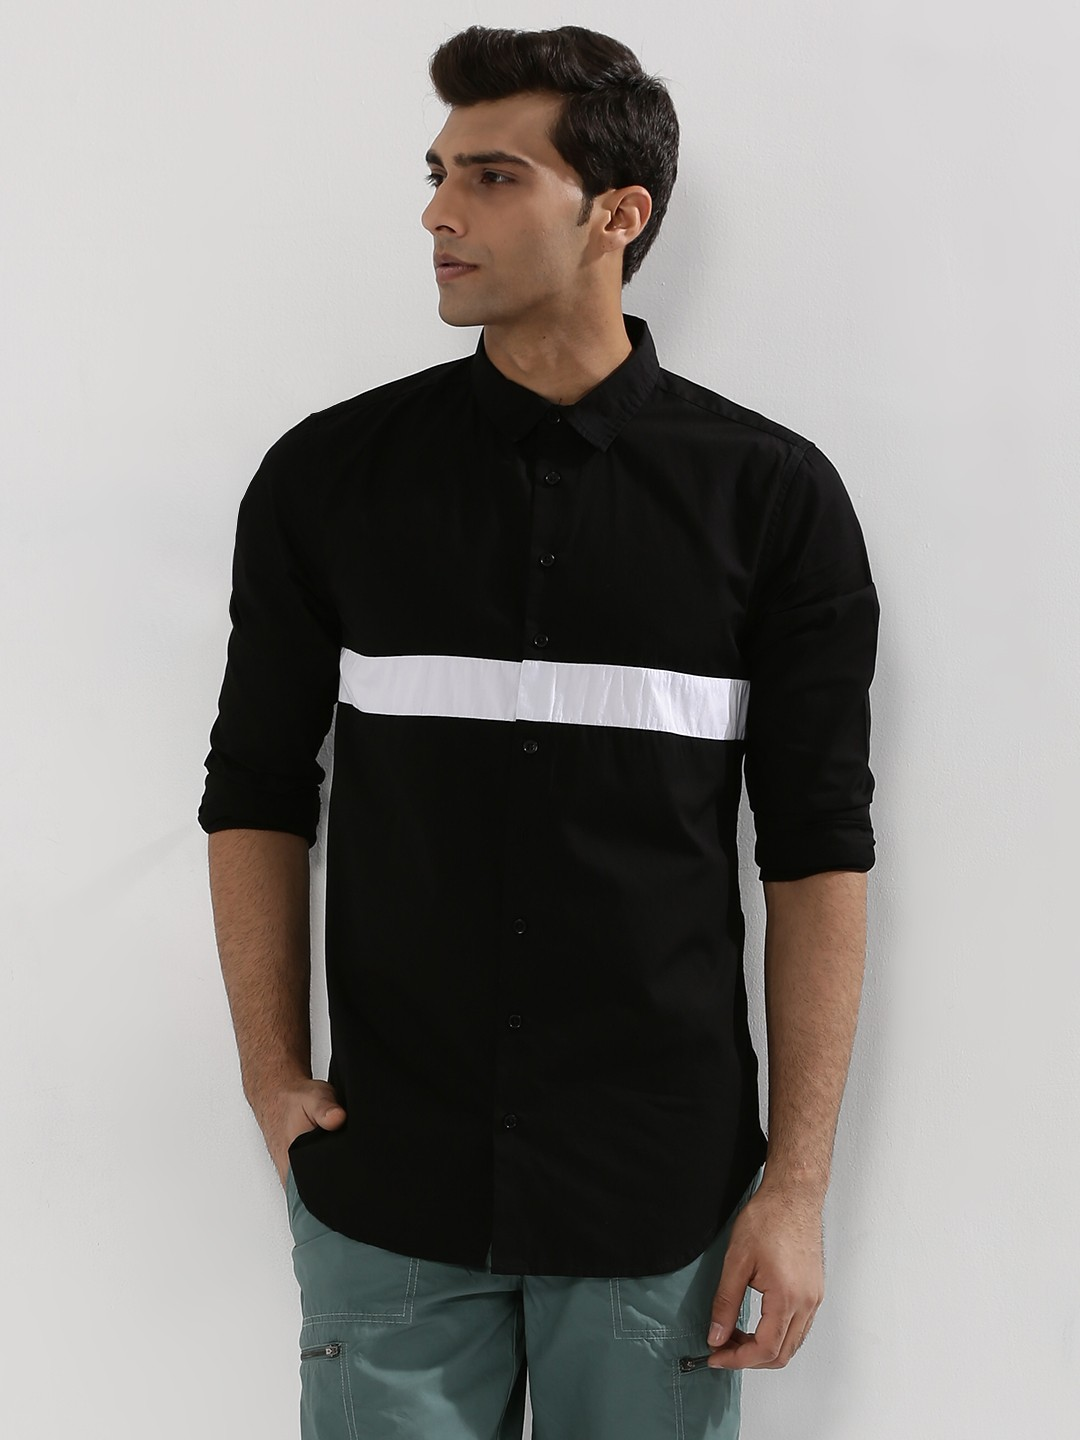 Adamo London Black Contrast Stripe Poplin Shirt 1